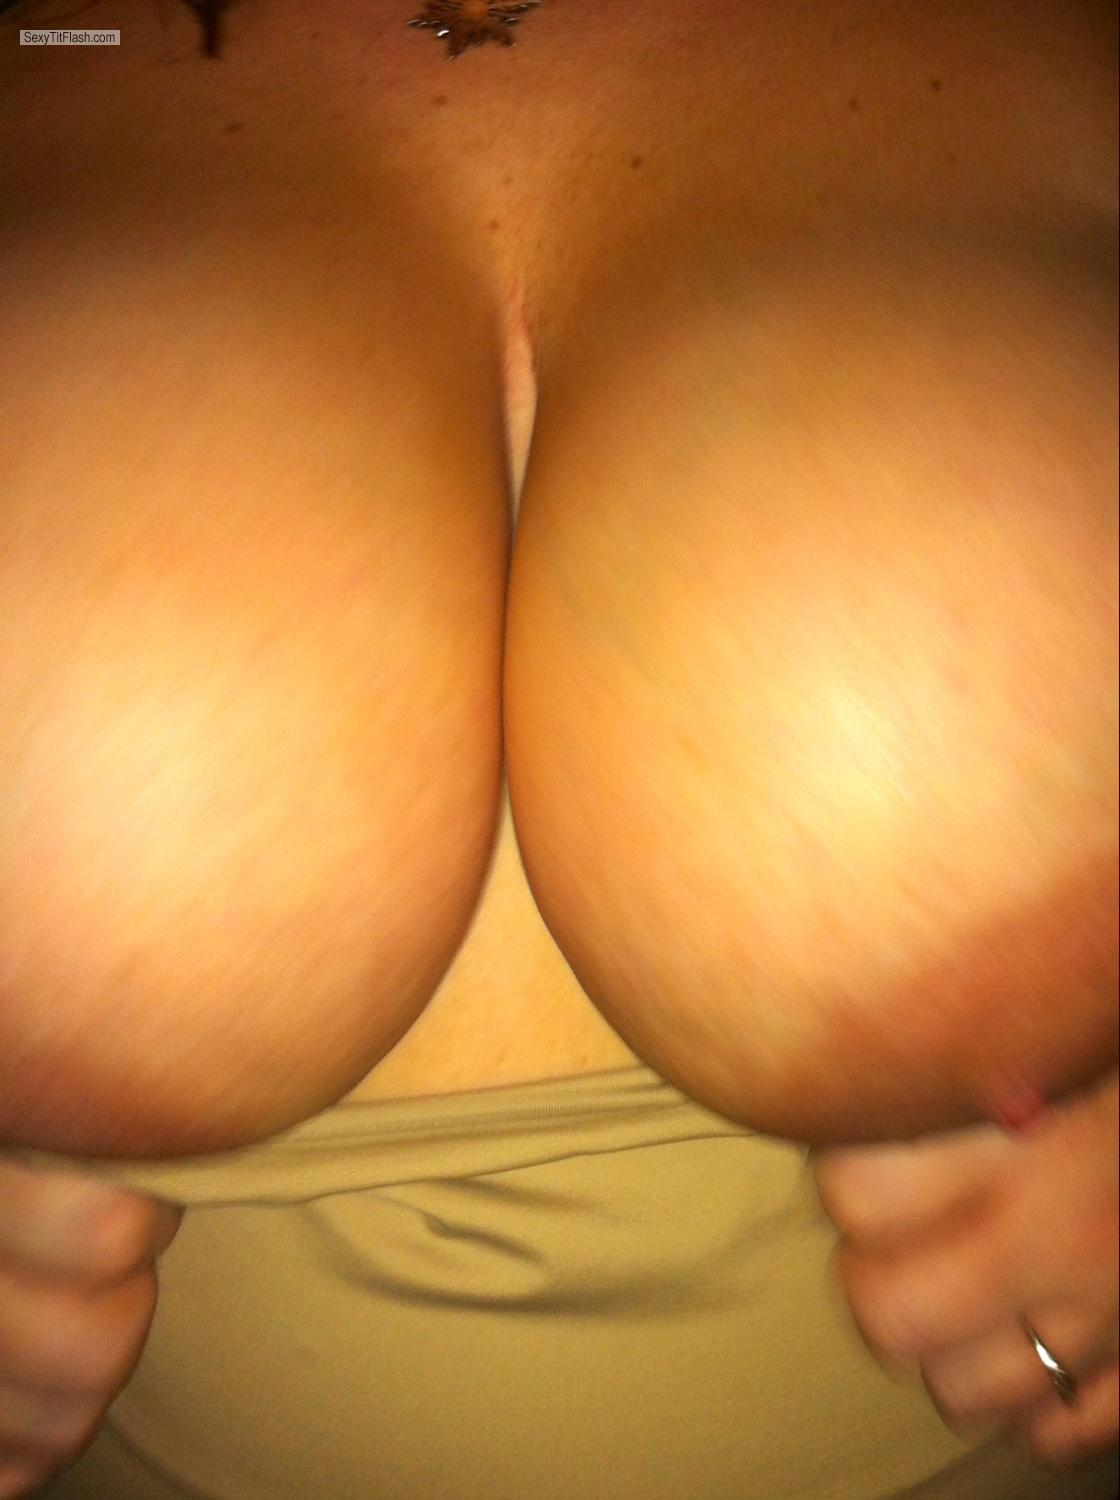 Tit Flash: Very Big Tits By IPhone - DDwife from United States